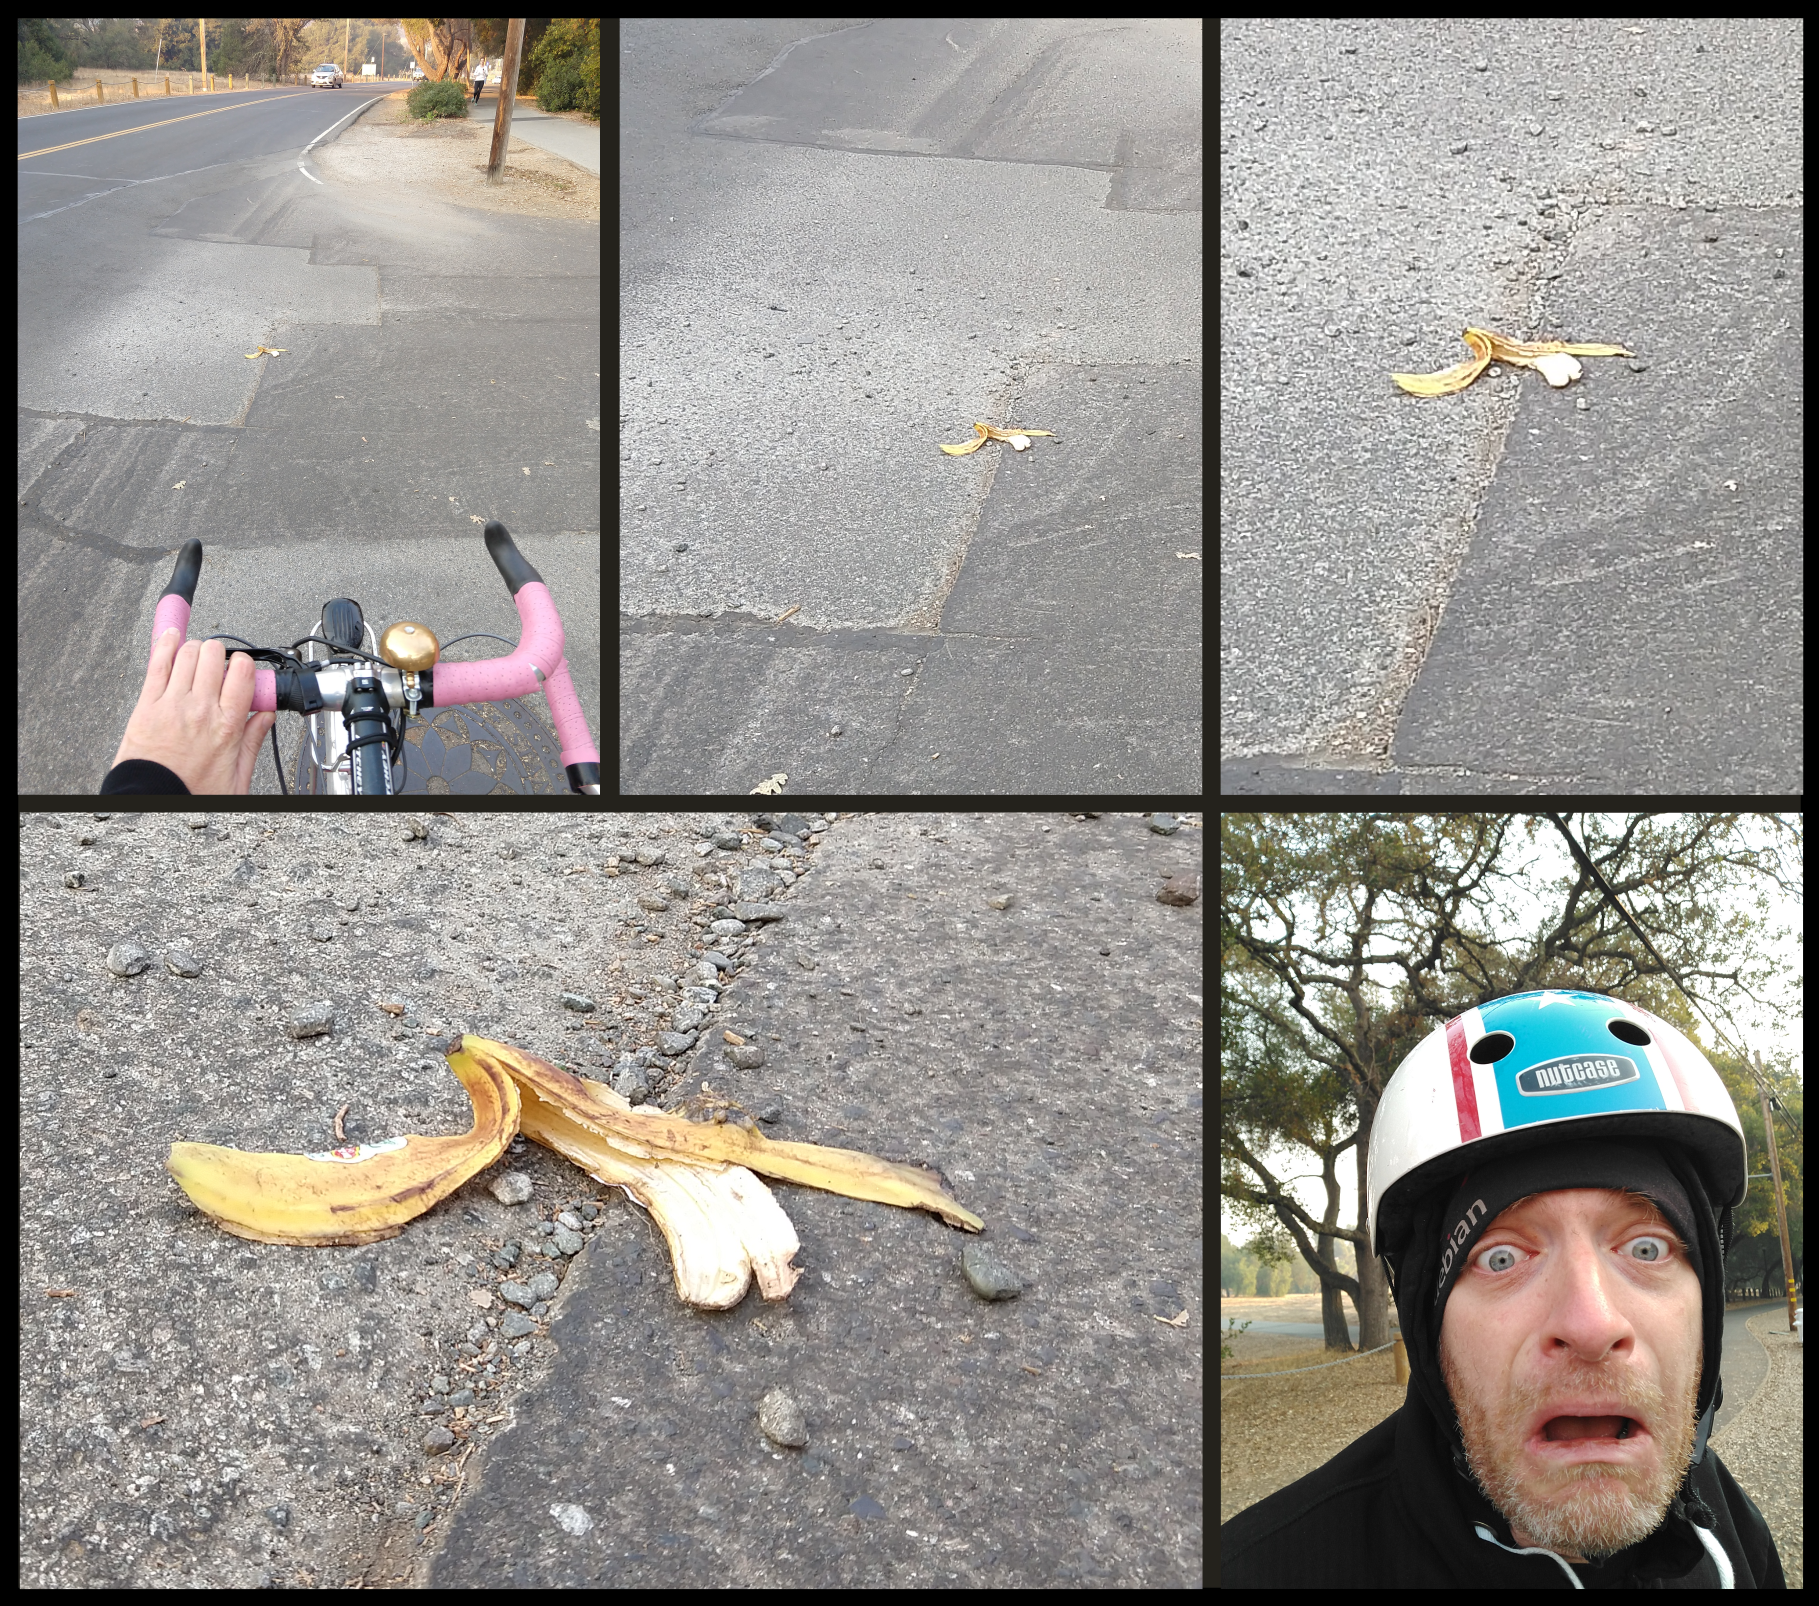 Photo comic of seeing a banana peel in the road while on a bike.